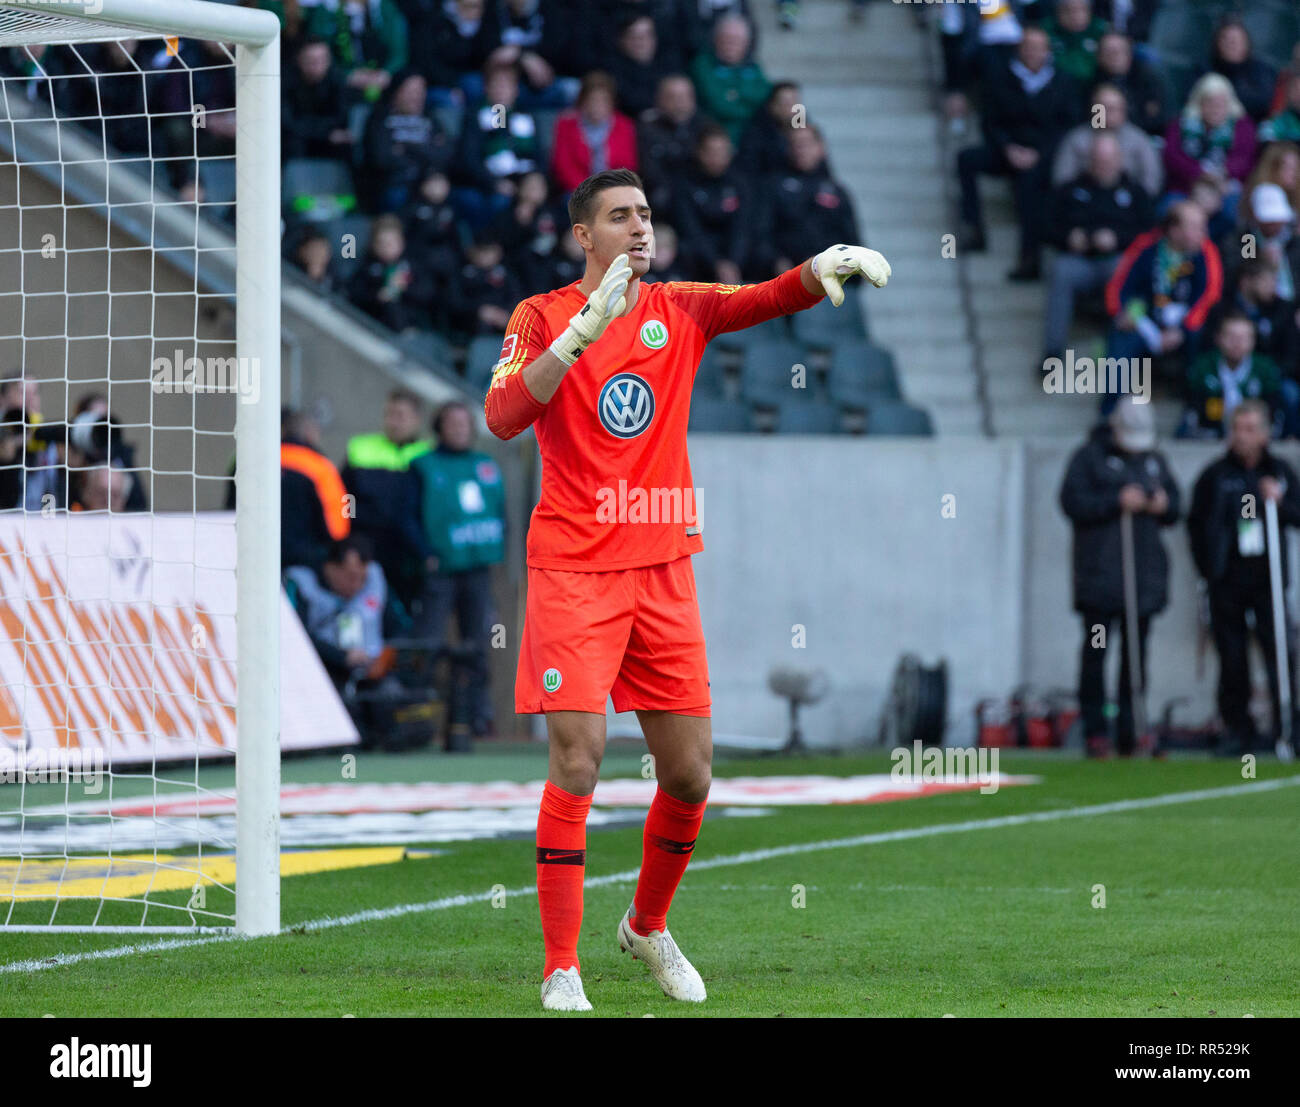 sports, football, Bundesliga, 2018/2019, Borussia Moenchengladbach vs VfL Wolfsburg 0-3, Stadium Borussia Park, scene of the match, keeper Koen Casteels (Wolfsburg), DFL REGULATIONS PROHIBIT ANY USE OF PHOTOGRAPHS AS IMAGE SEQUENCES AND/OR QUASI-VIDEO - Stock Image